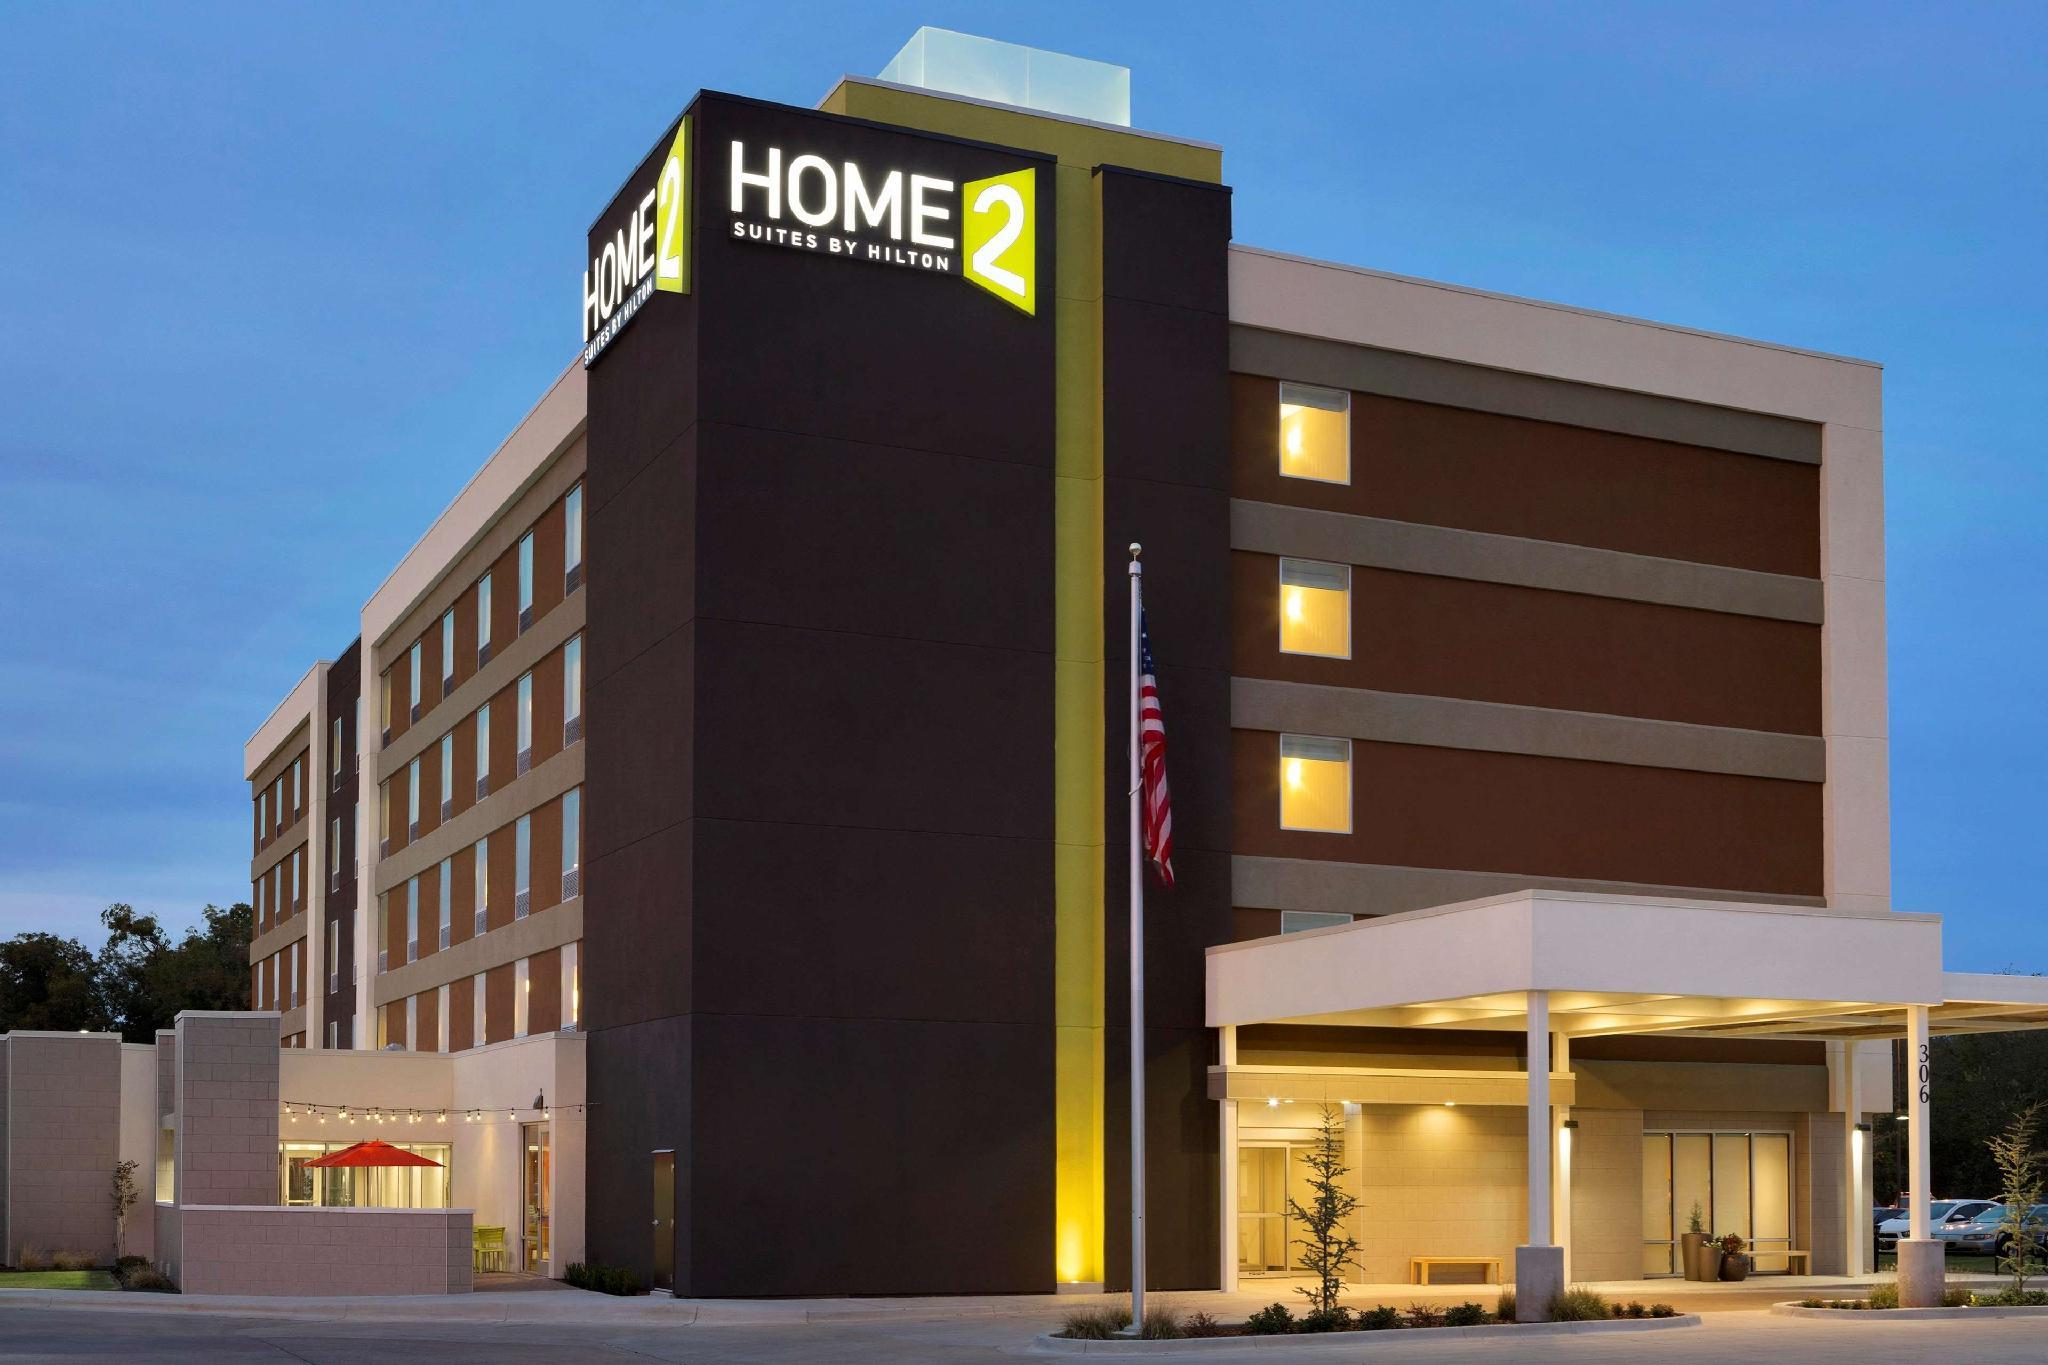 Vasca Da Letto Per Disabili : Home2 suites by hilton stillwater stillwater ok affari